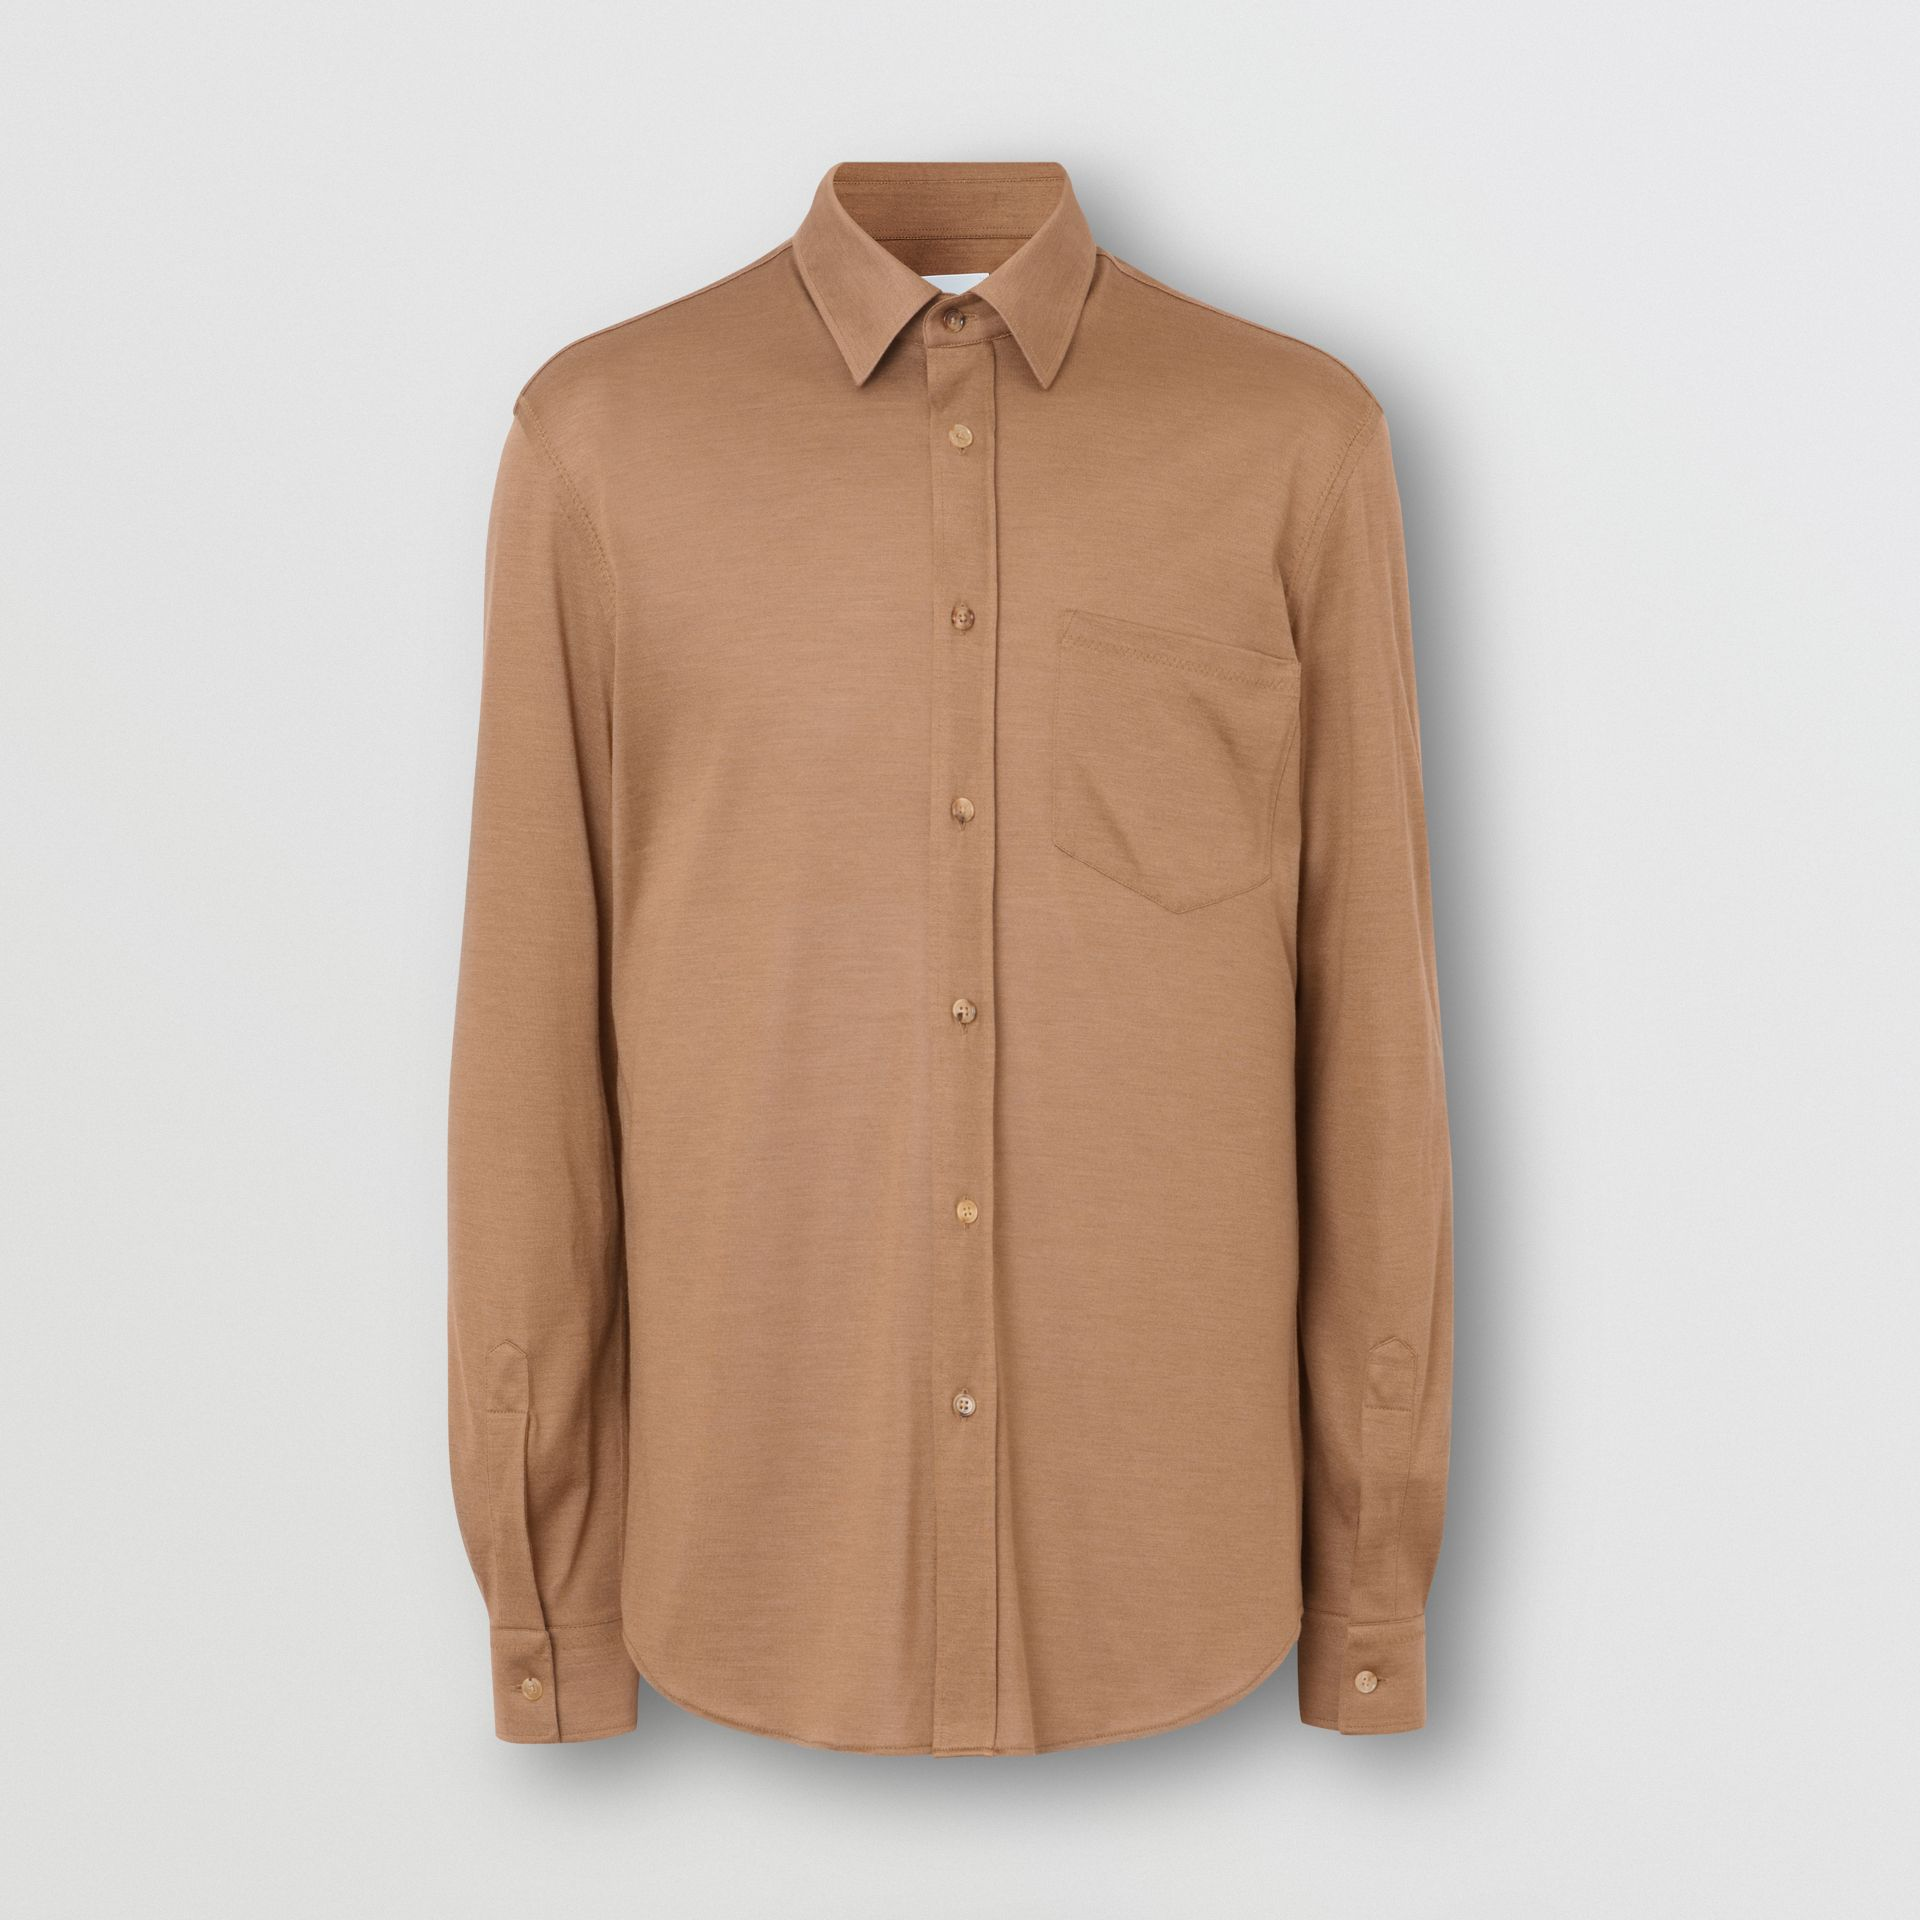 Classic Fit Silk Jersey Shirt in Warm Camel - Men | Burberry United States - gallery image 3